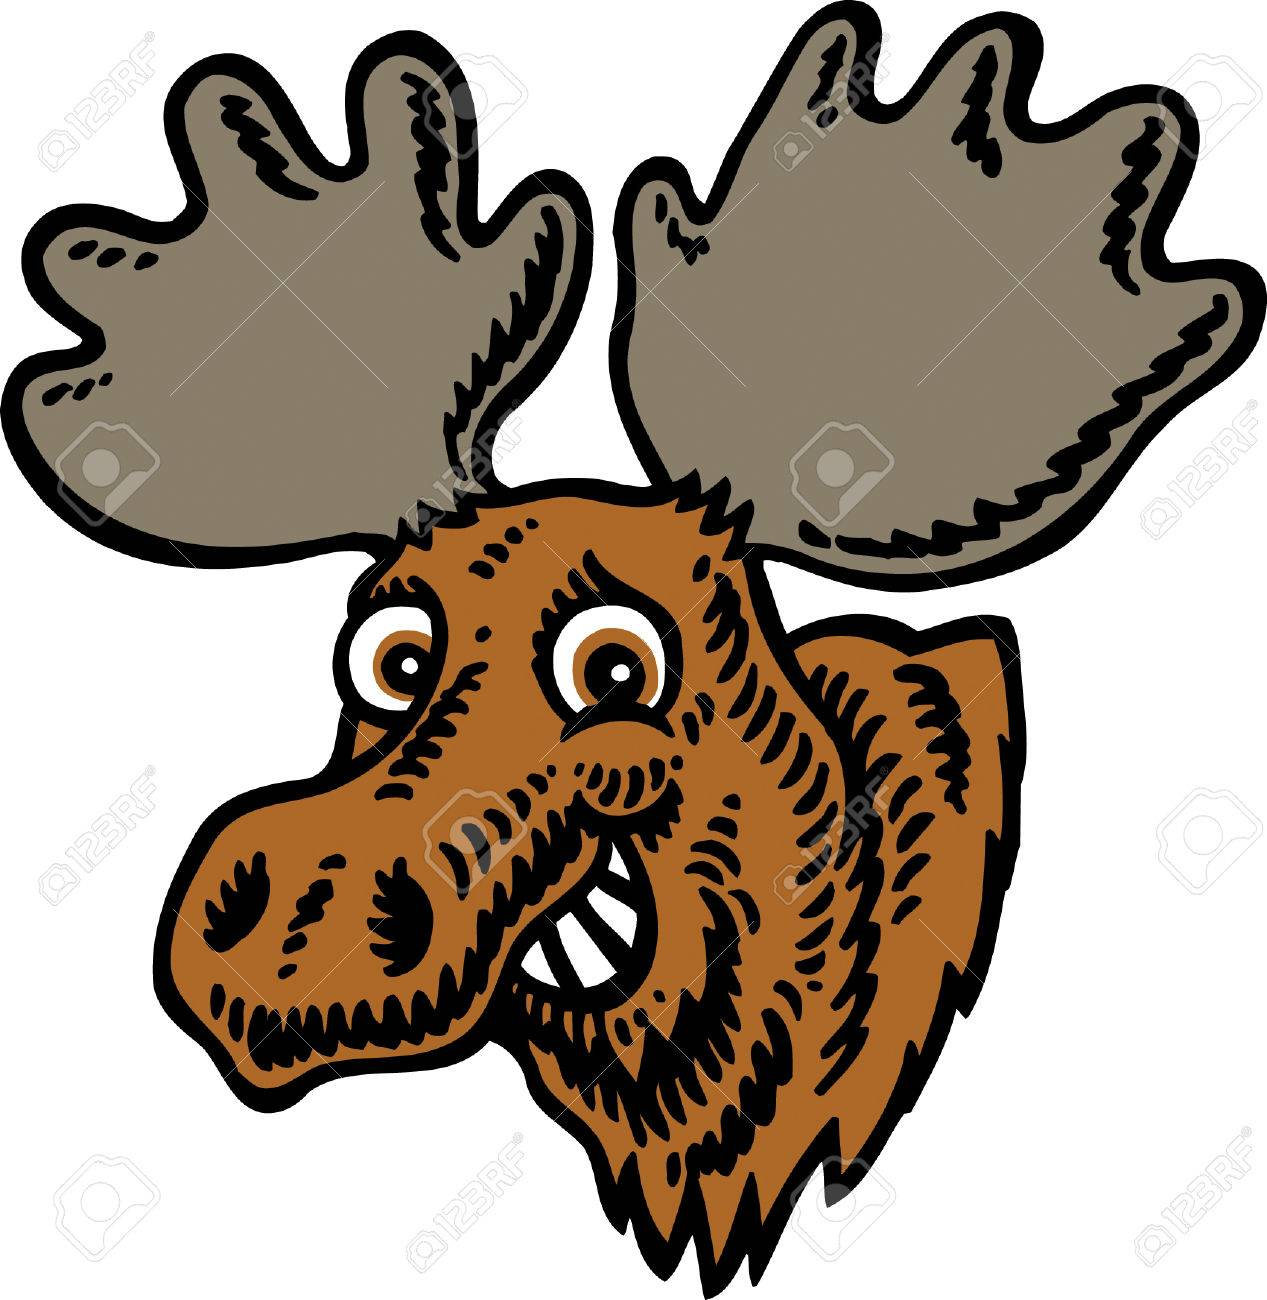 moose head royalty free cliparts vectors and stock illustration